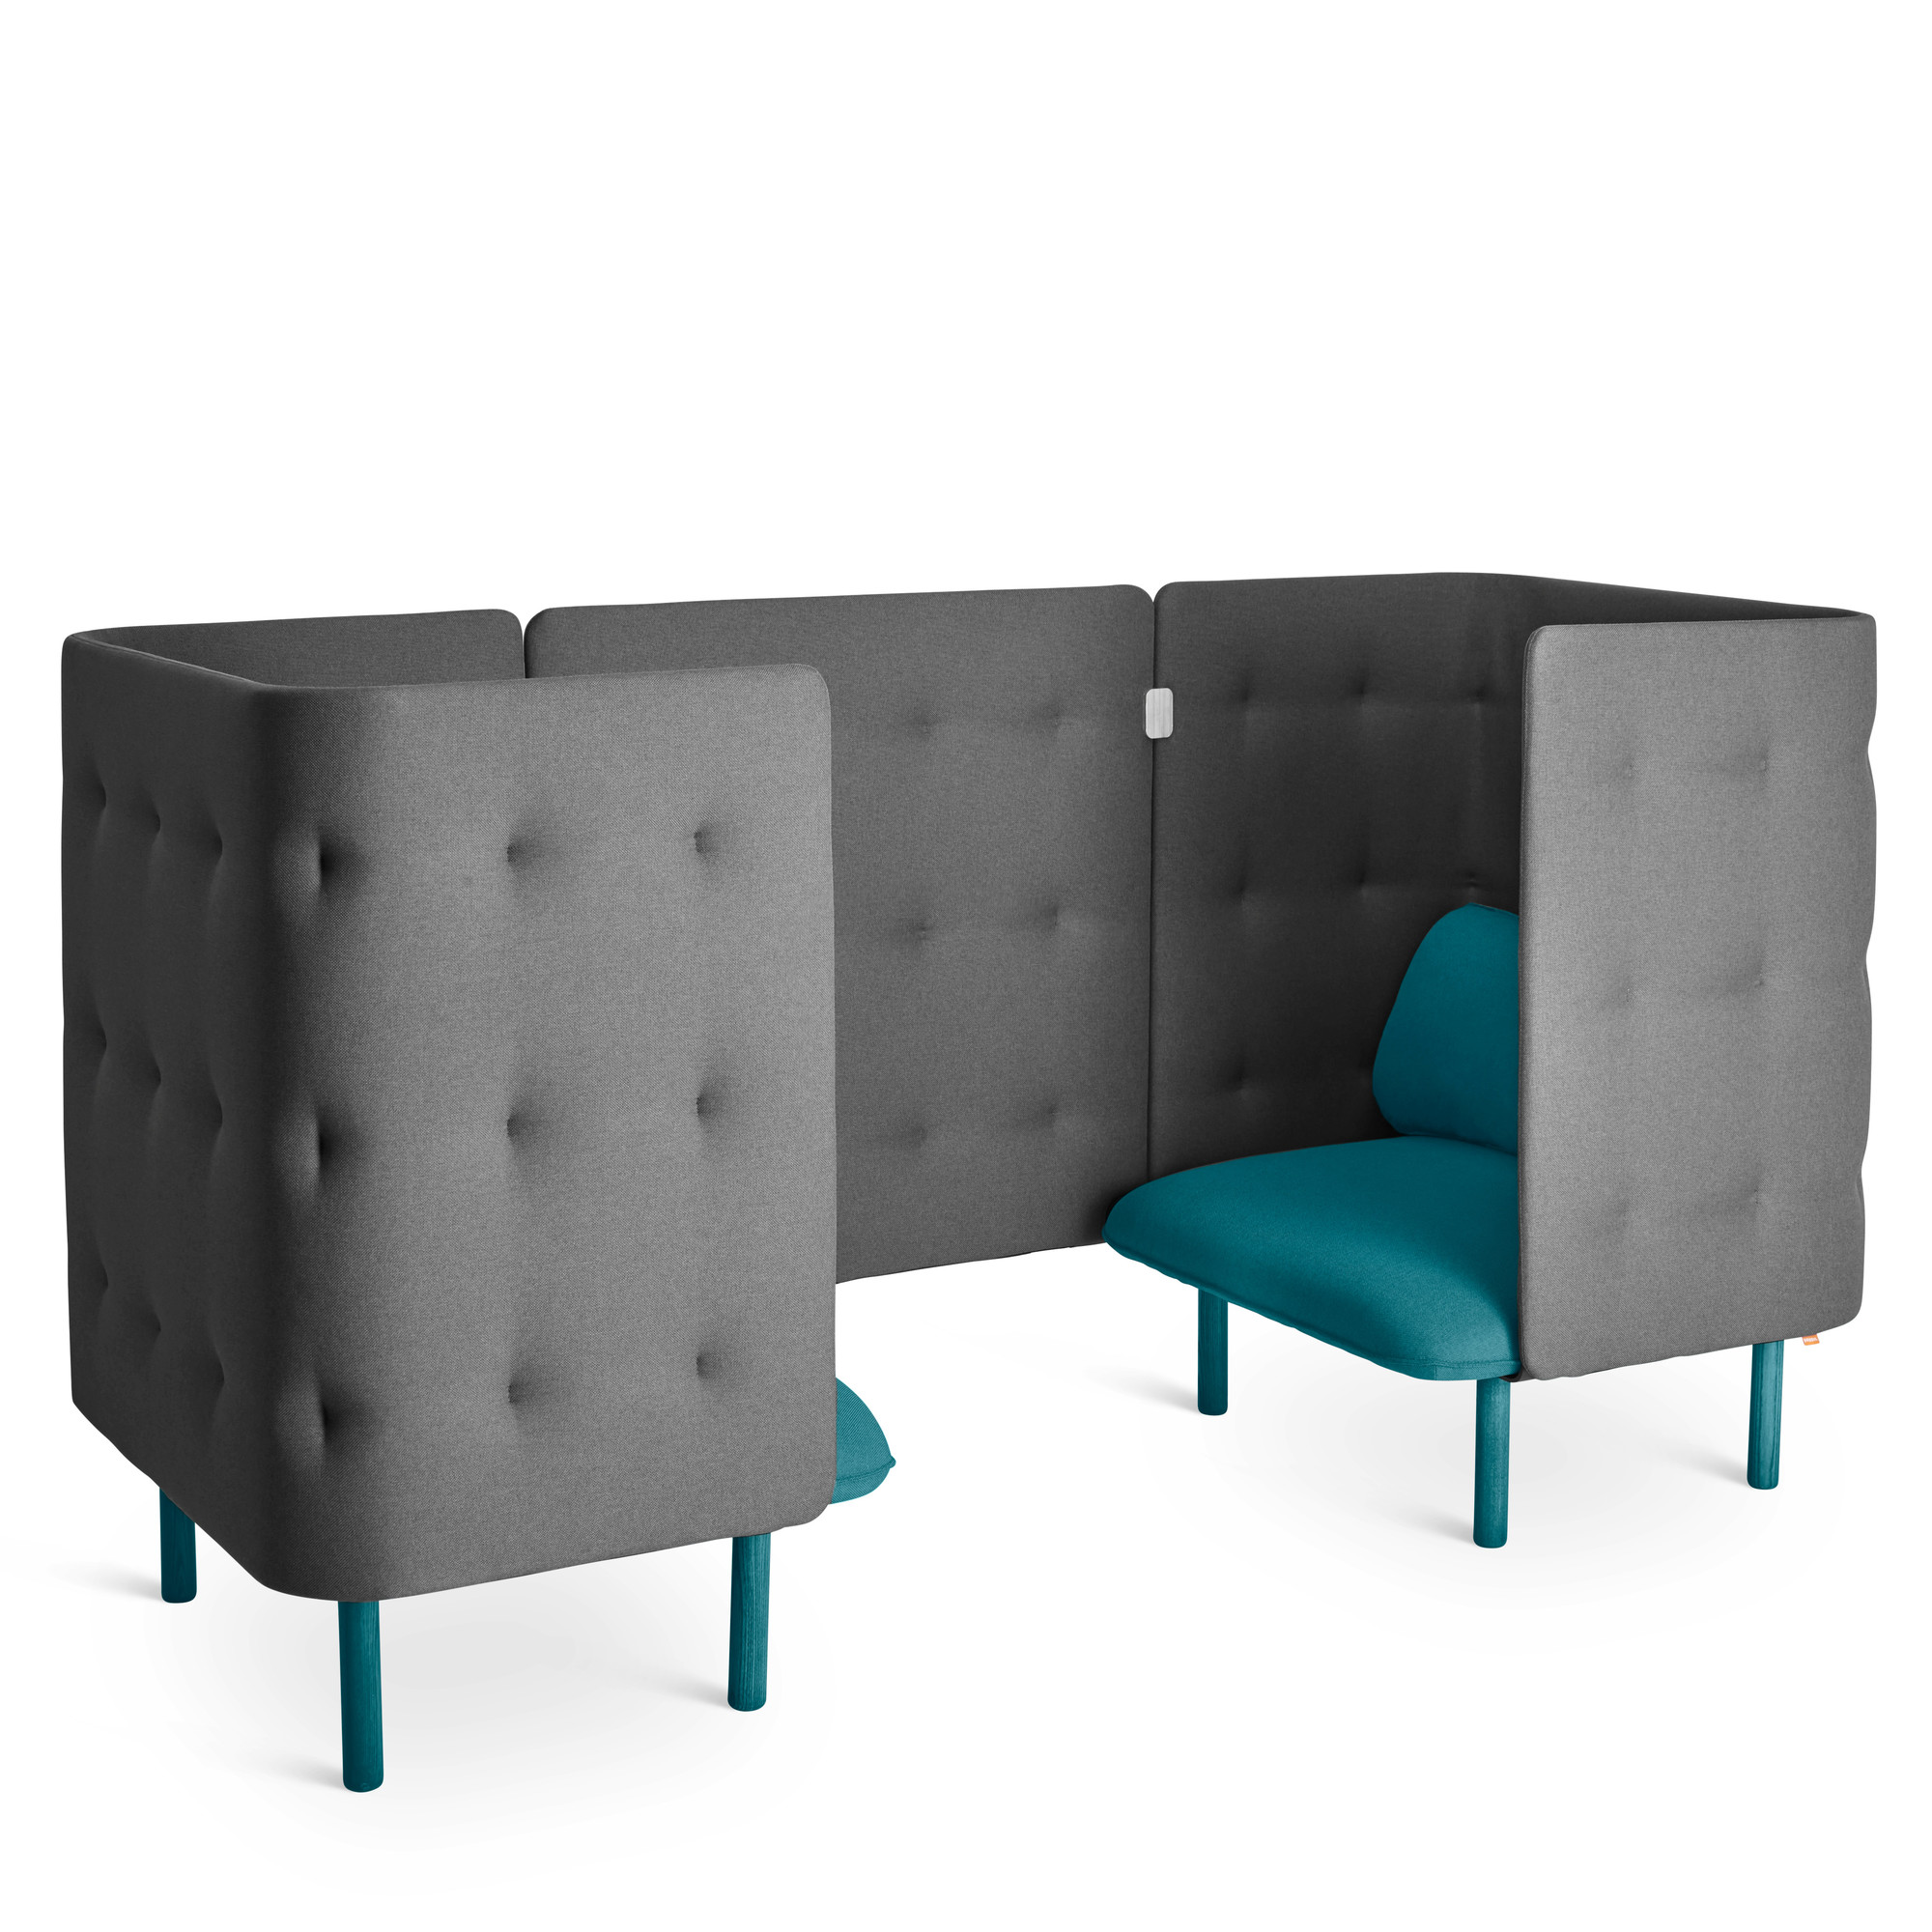 Teal Dark Gray Qt Chair Booth Lounge Poppin